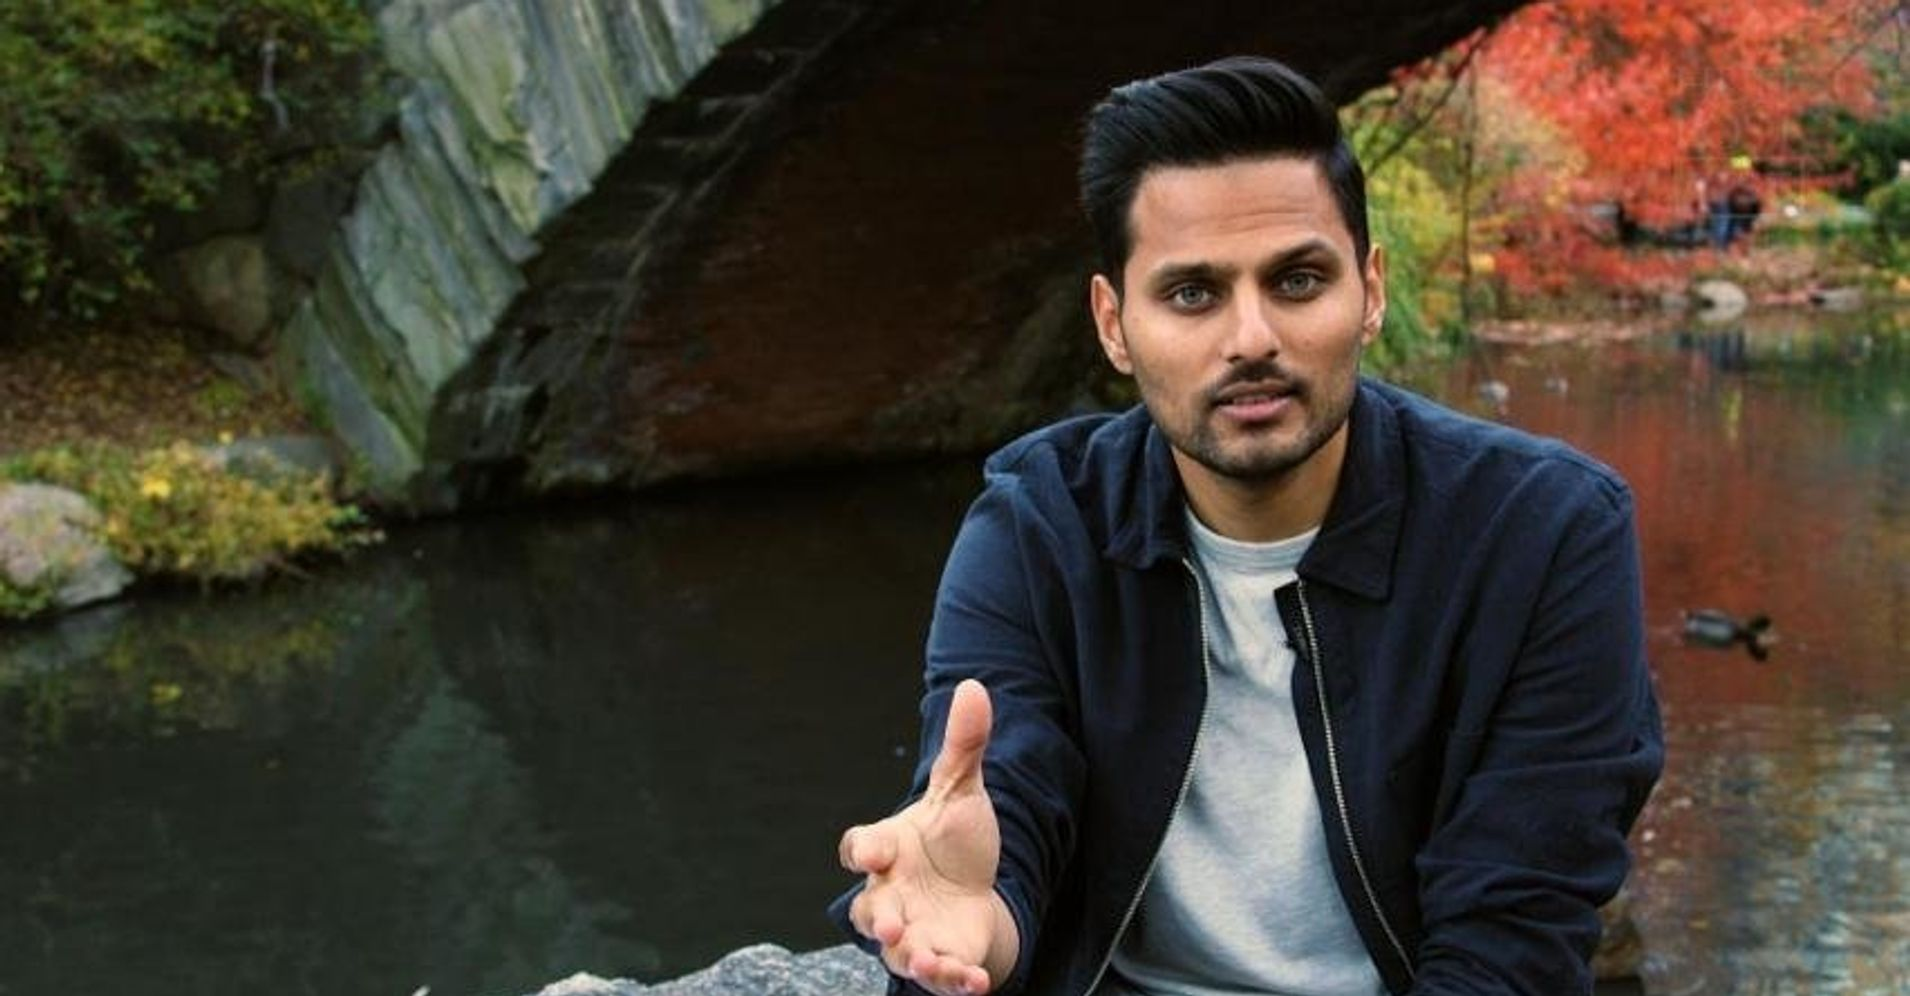 A Mindful Message from Jay Shetty: Building Bridges | HuffPost